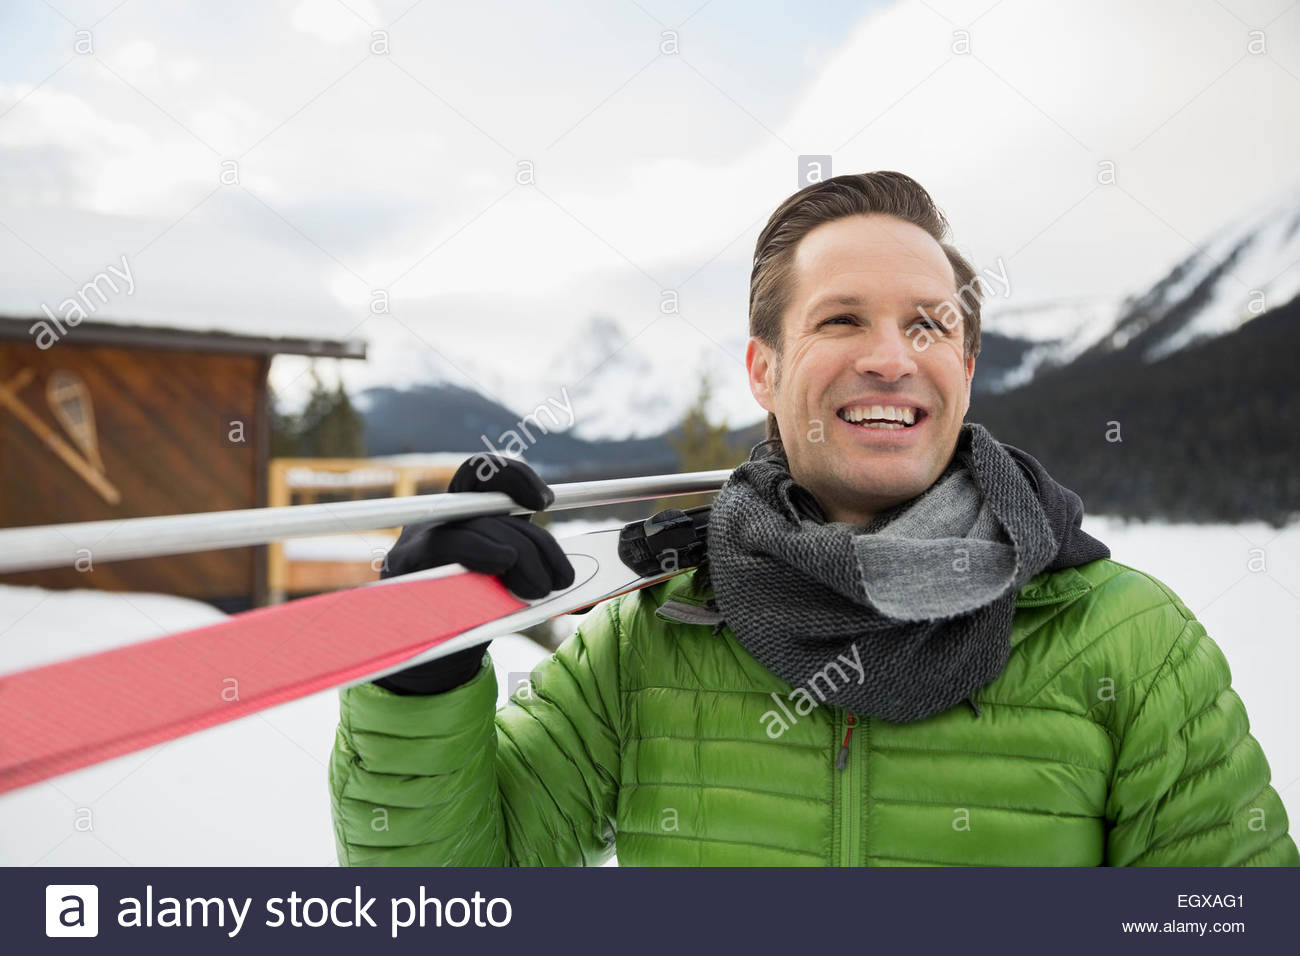 Smiling man with cross-country skis in snow - Stock Image